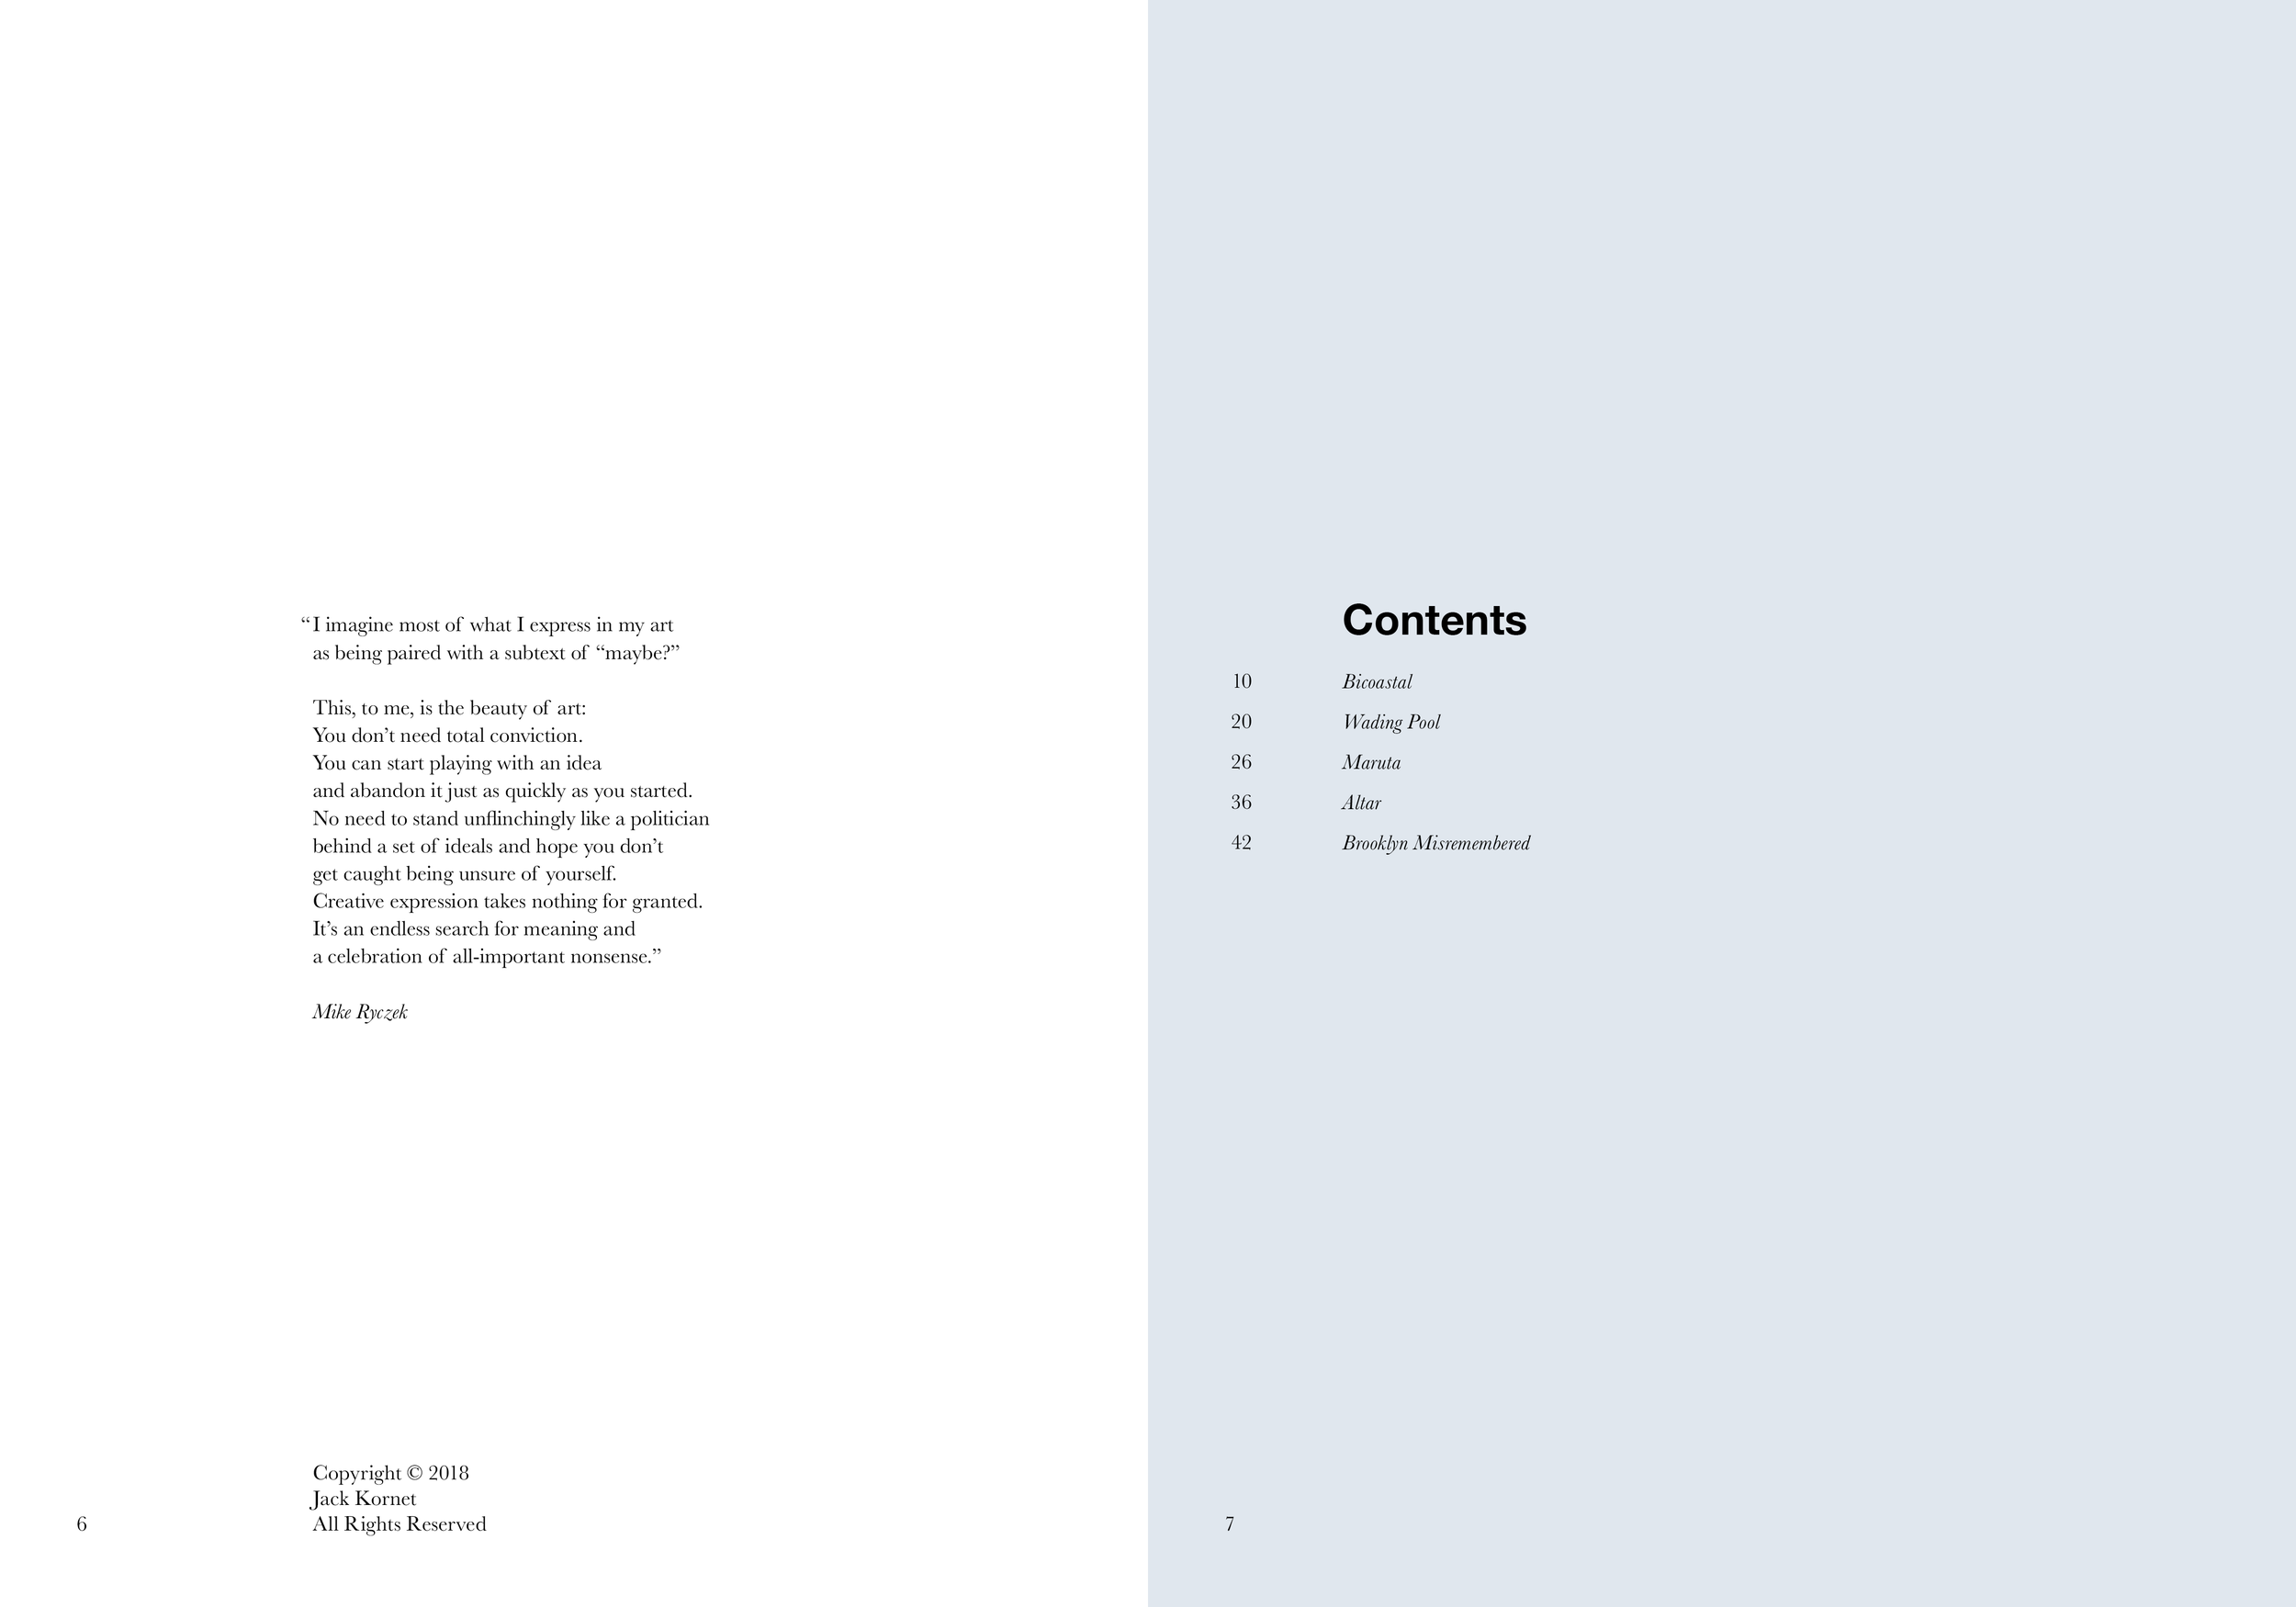 Quotation and table of contents